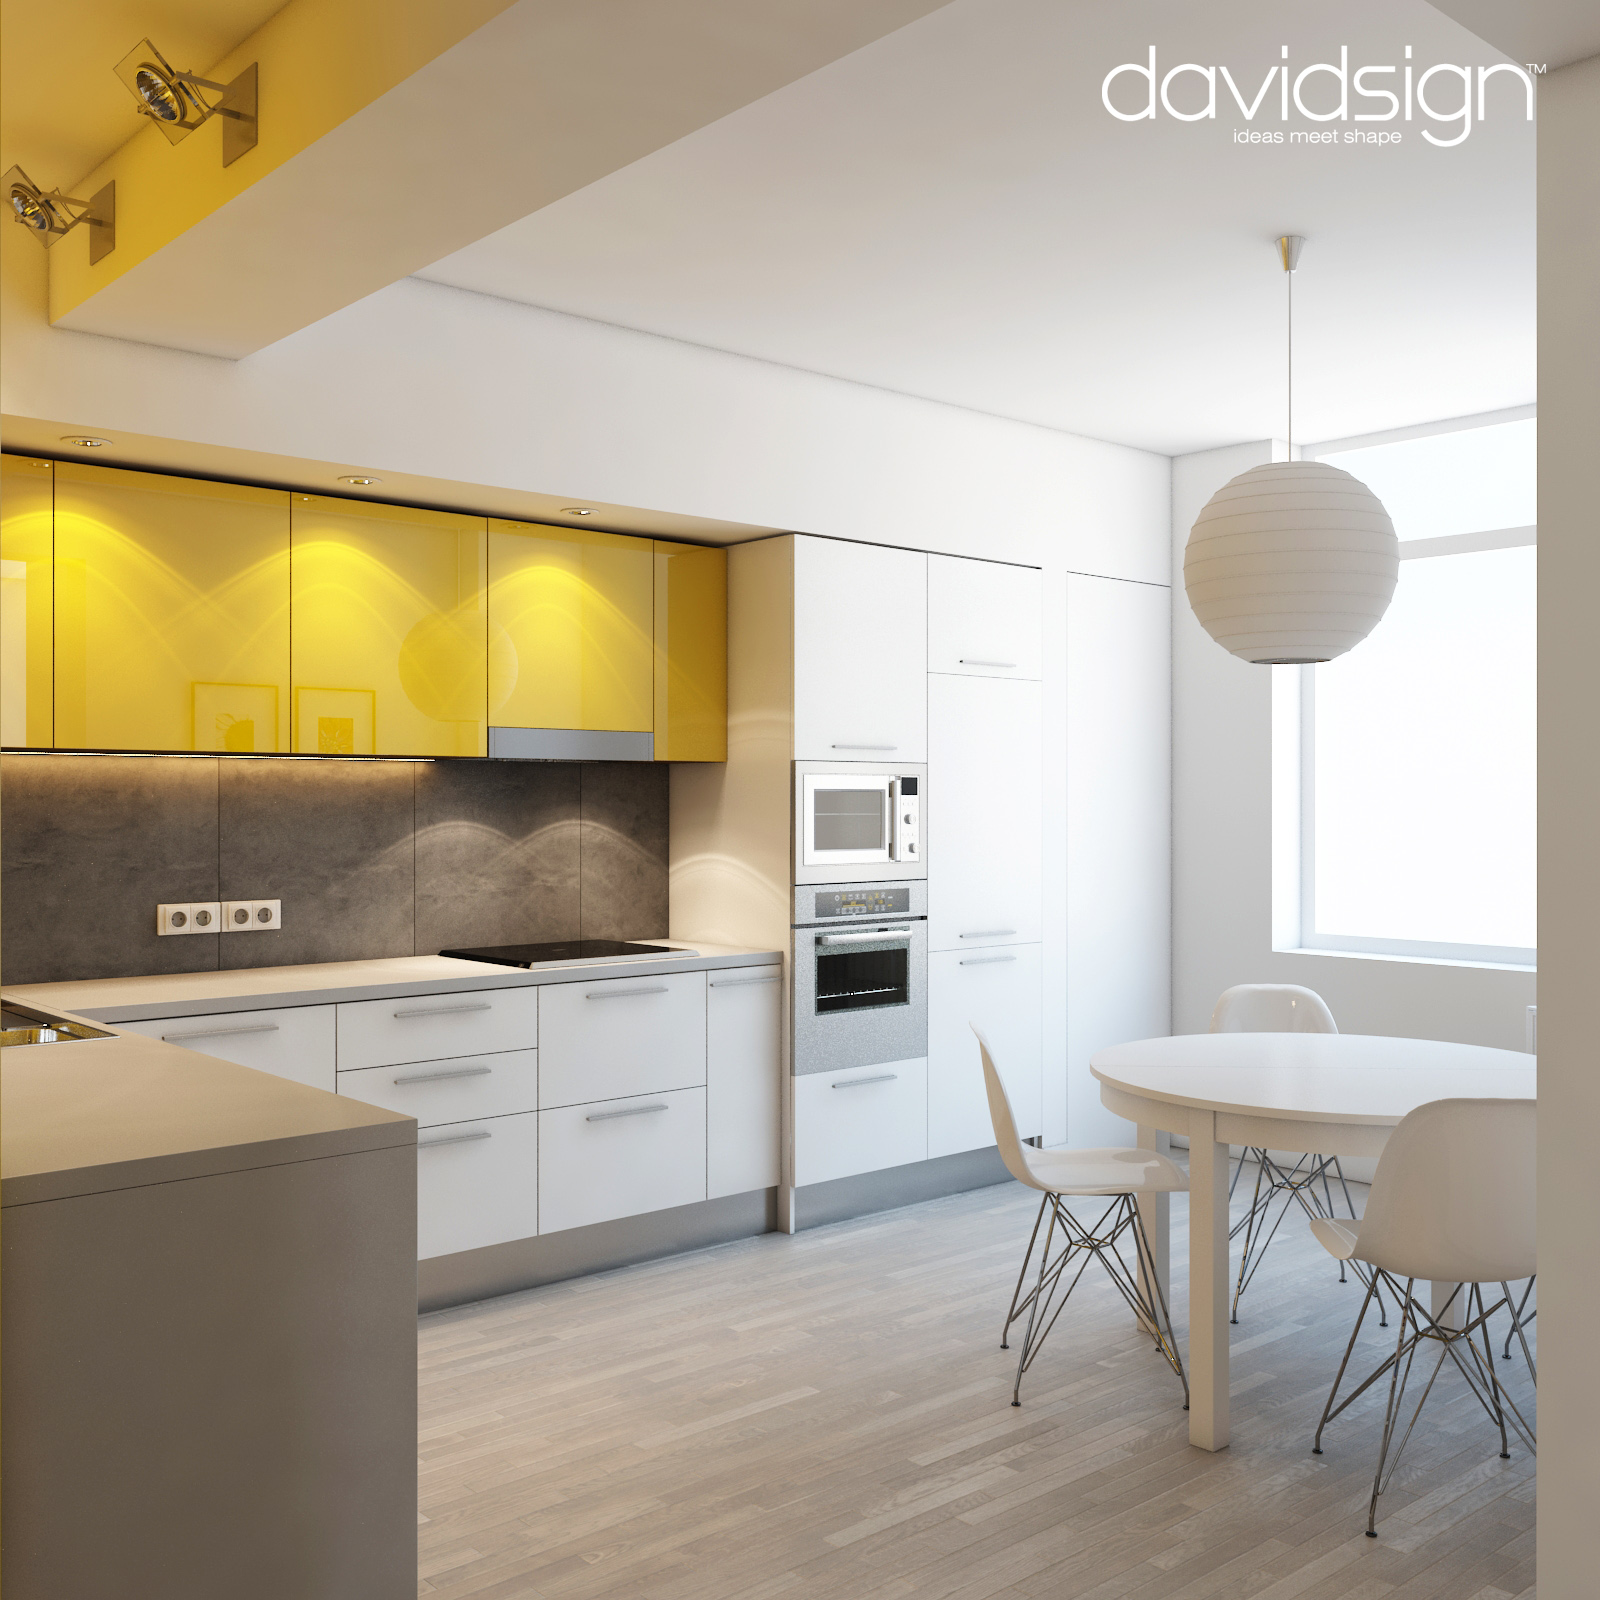 Design interior pentru apartament n chi in u davidsign blog for Interior decorating vs design